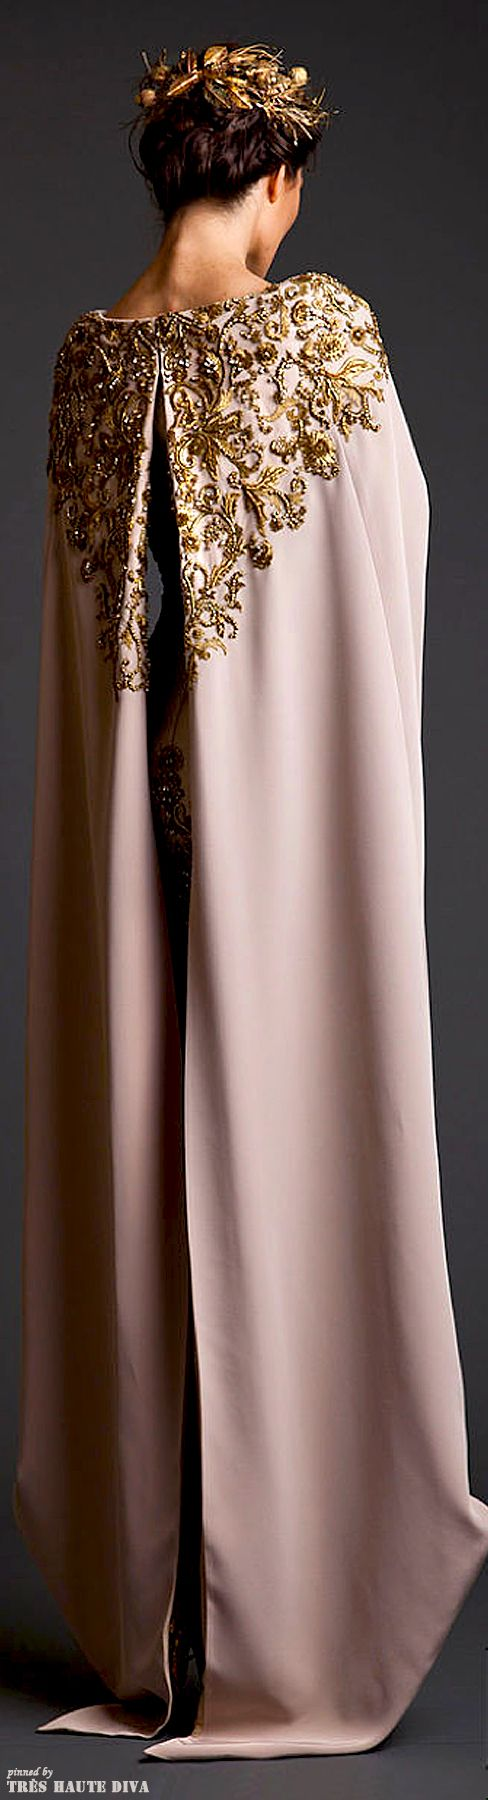 Krikor Jabotian Couture S/S 2014                                                                                                                                                                                 More